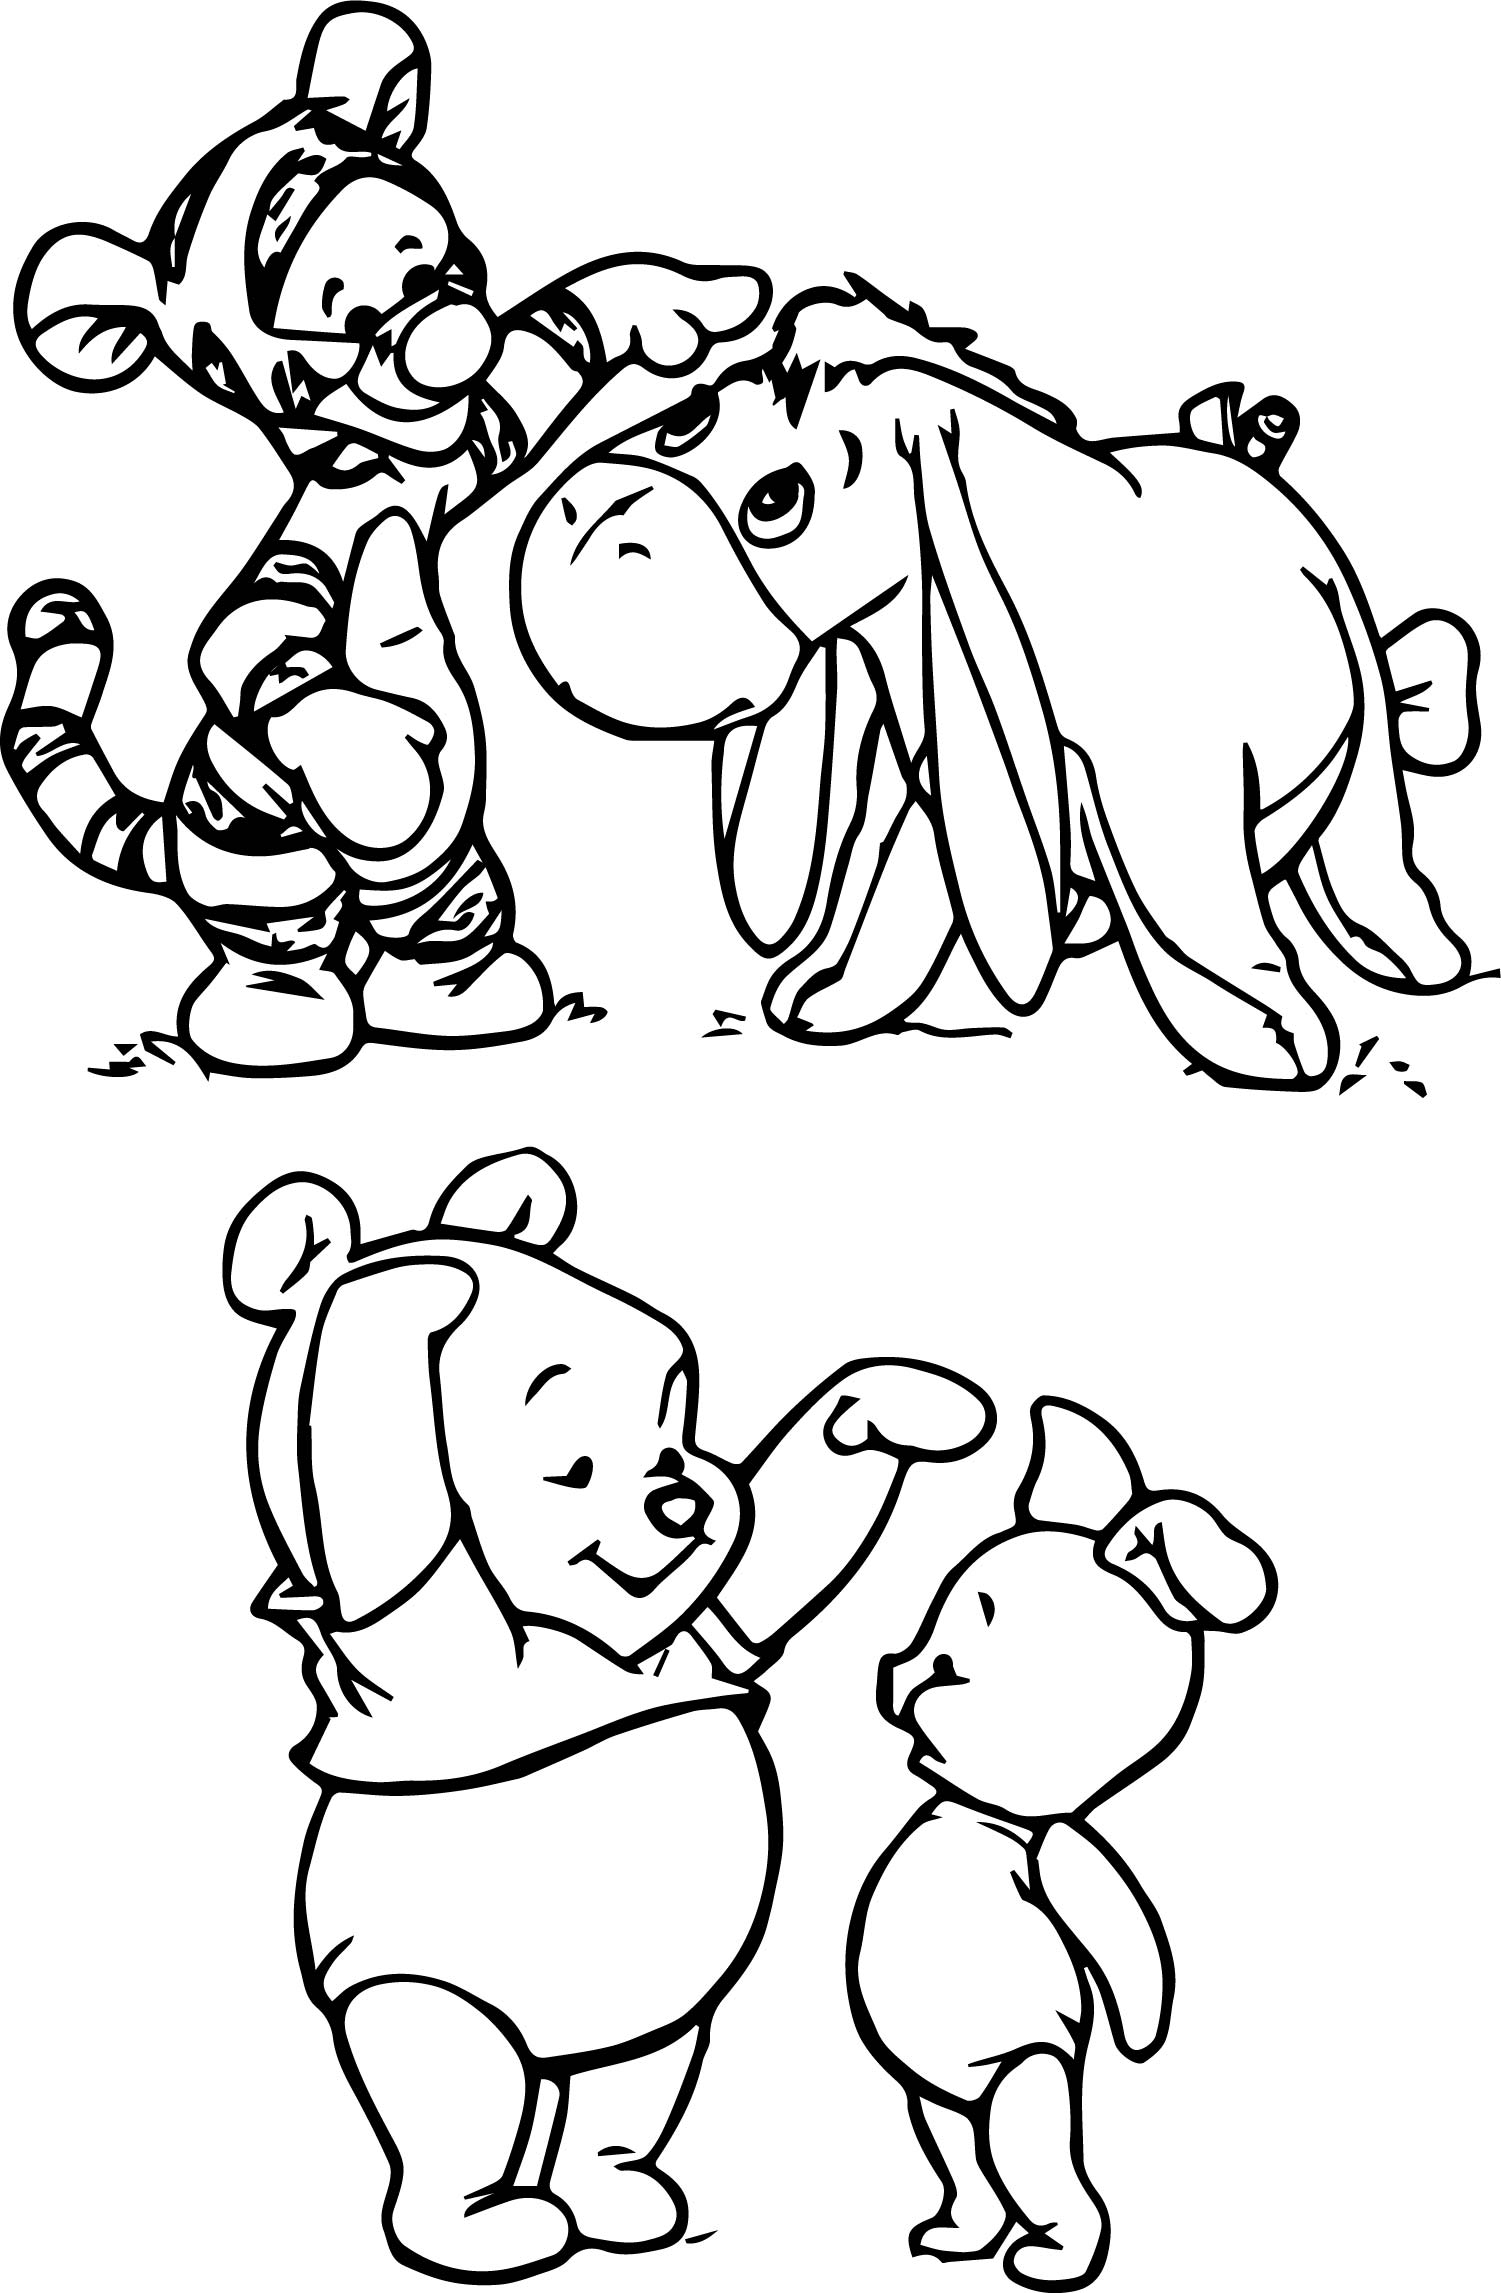 Baby Winnie the Pooh Characters Coloring Pages